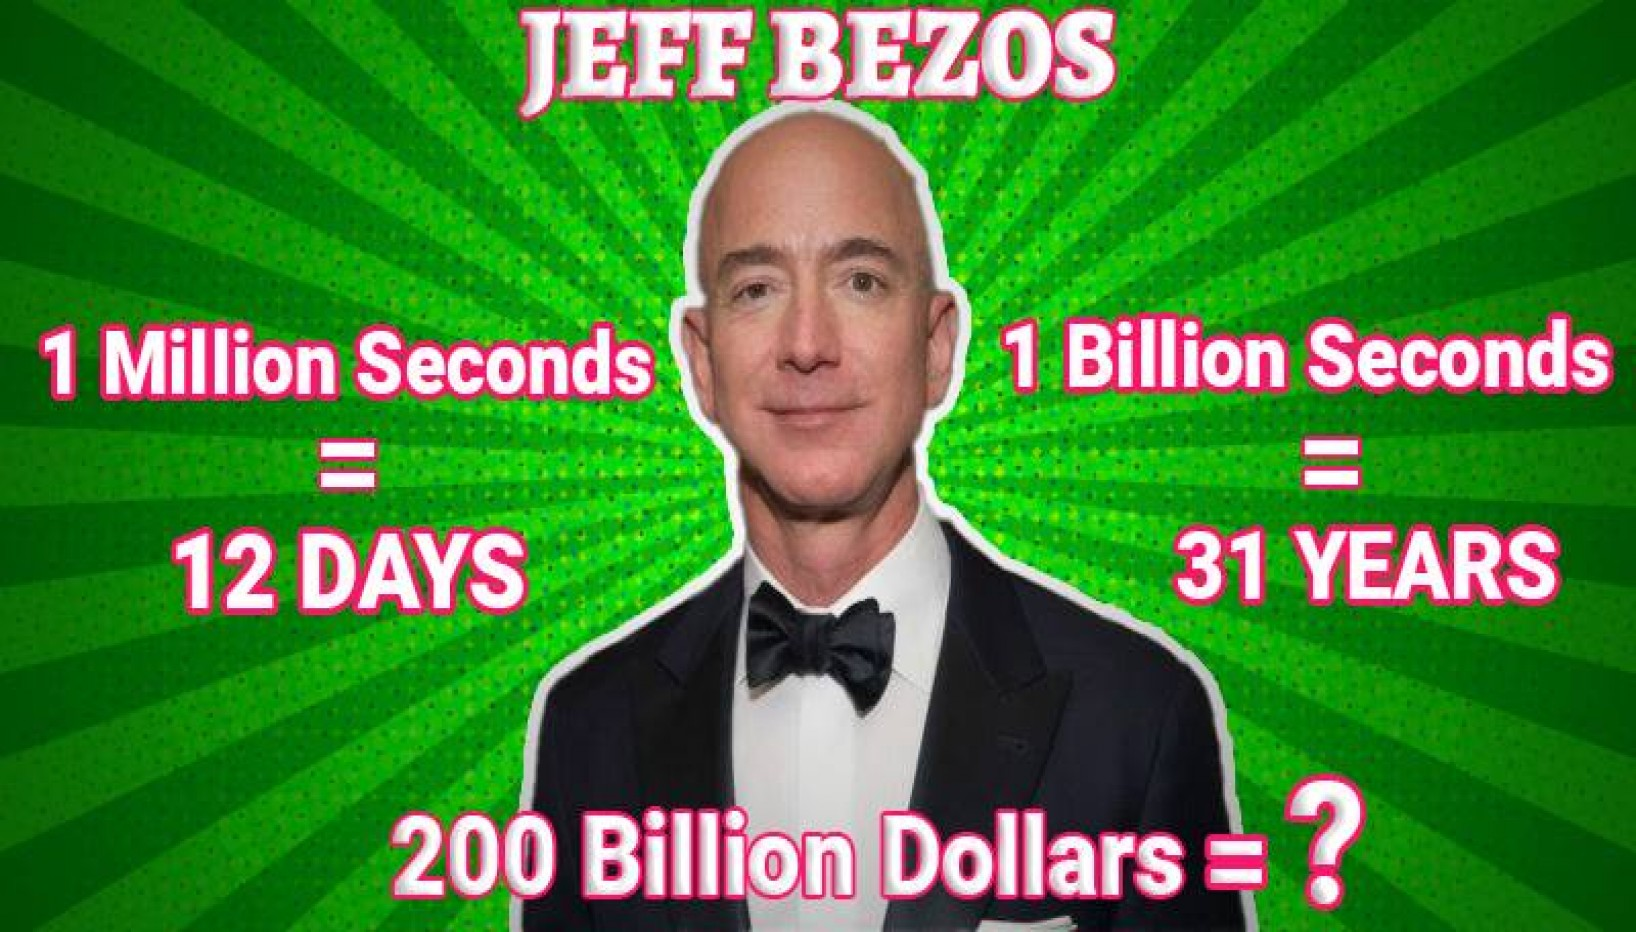 8 Comparisons That Put The Wealth Of Jeff Bezos In Context